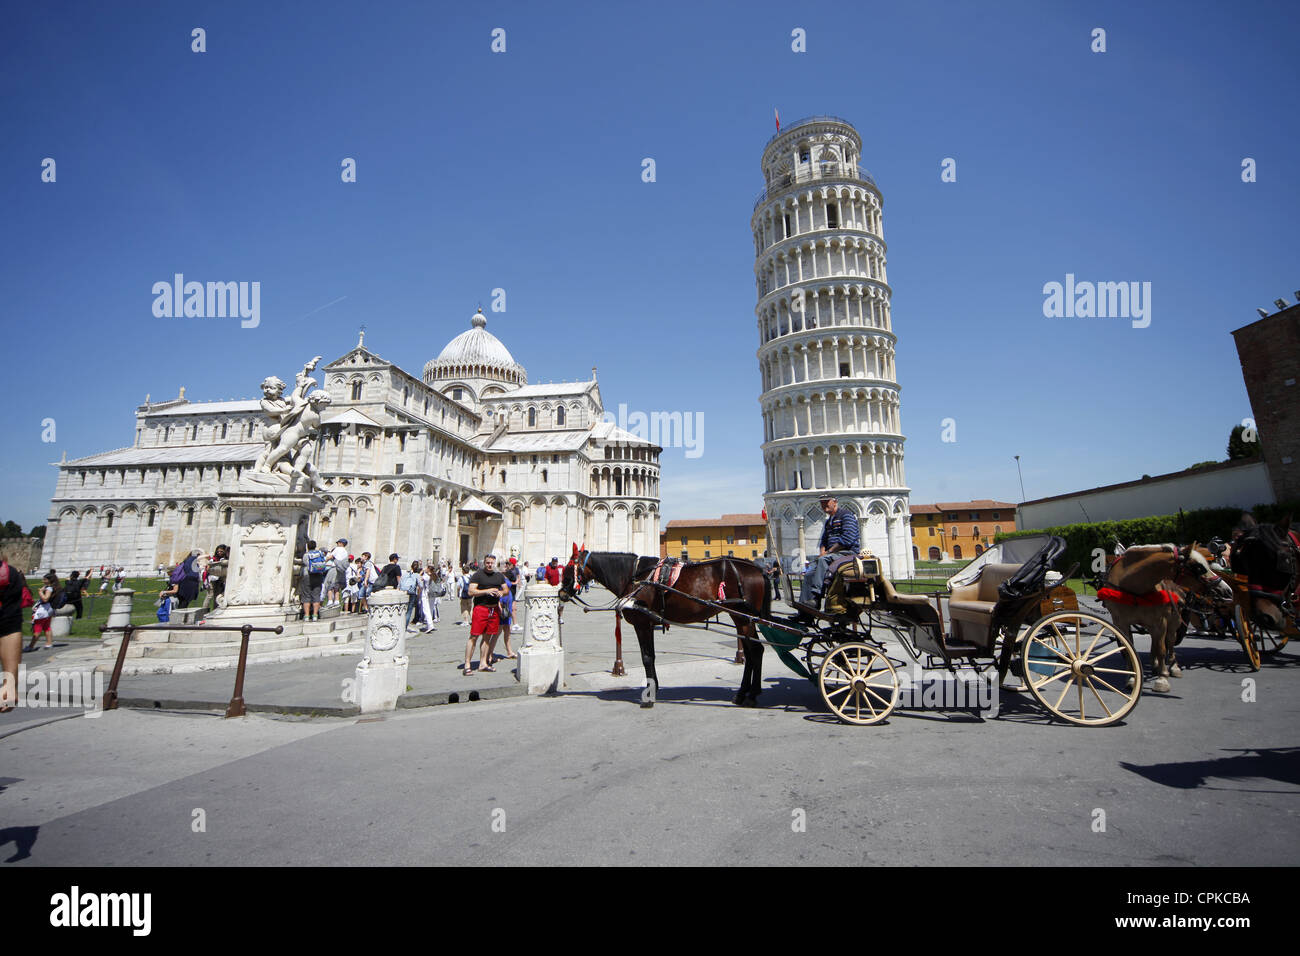 HORSE & CART ST. MARY'S CATHEDRAL & LEANING TOWER PISA TUSCANY ITALY 11 May 2012 - Stock Image